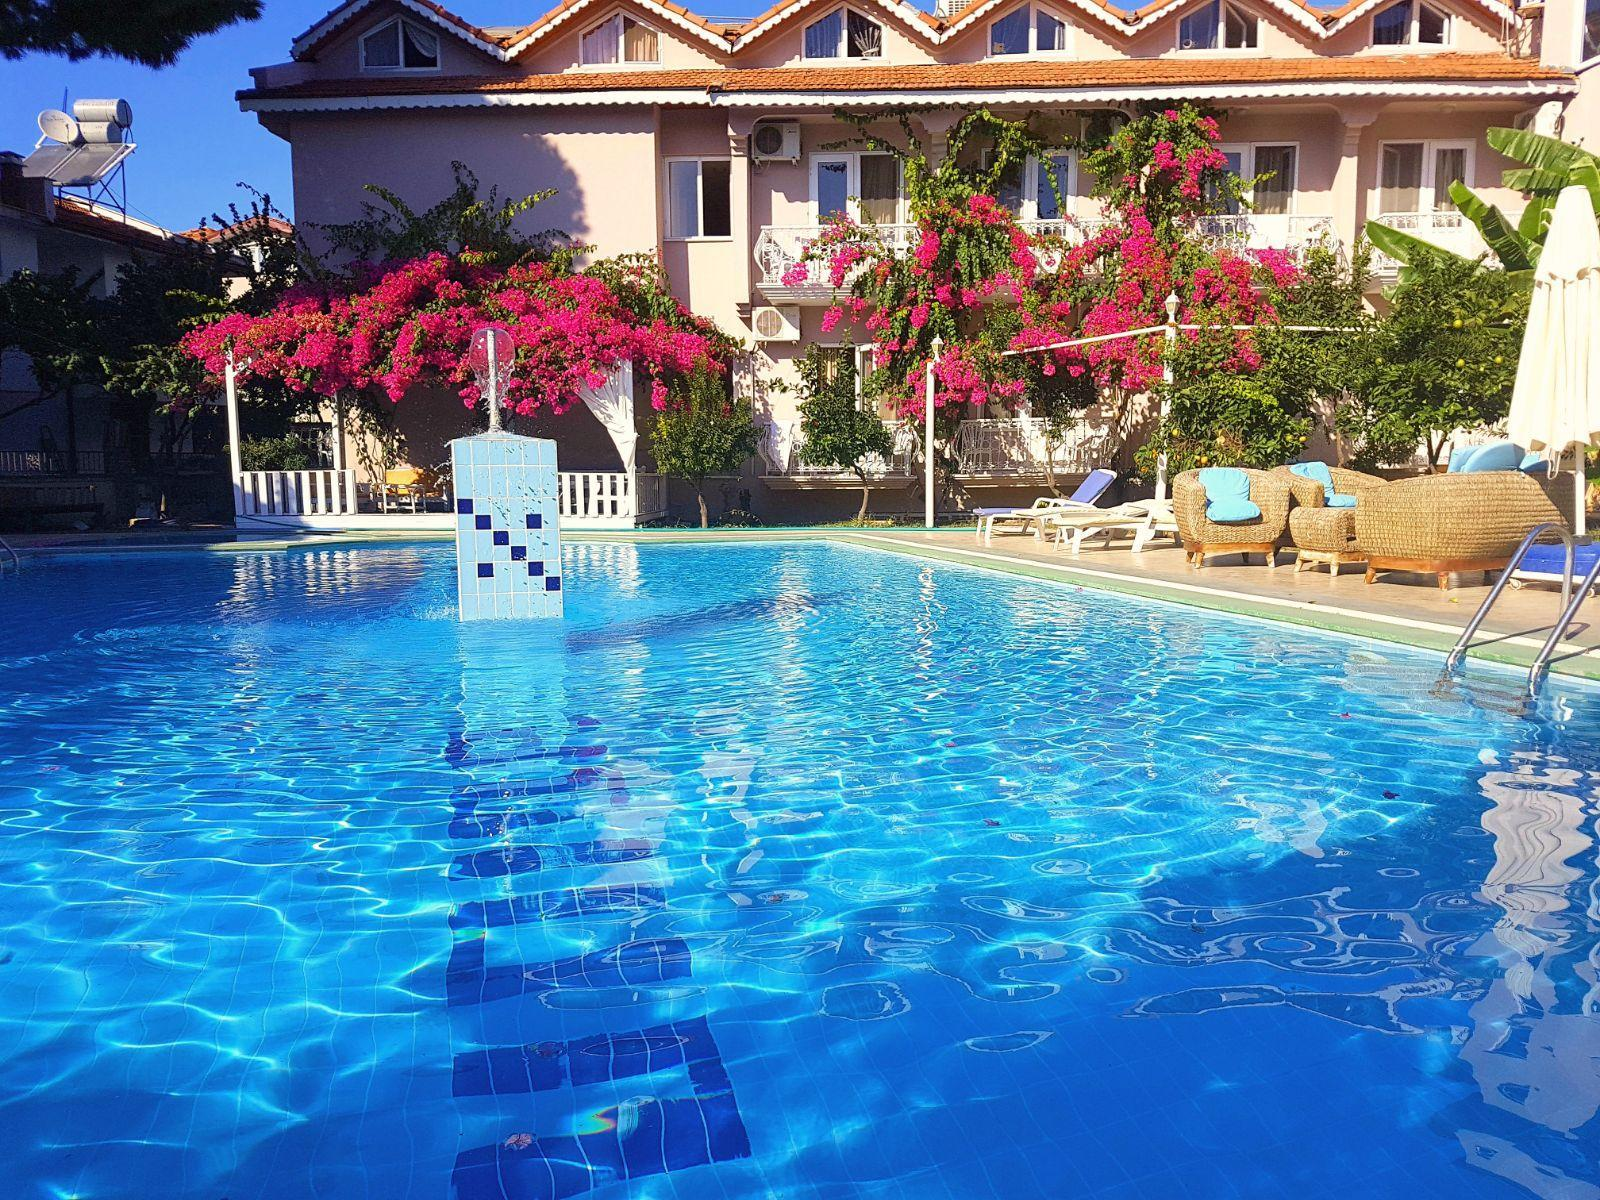 Dalyan Hotel Caria Royal - Picture of Hotel